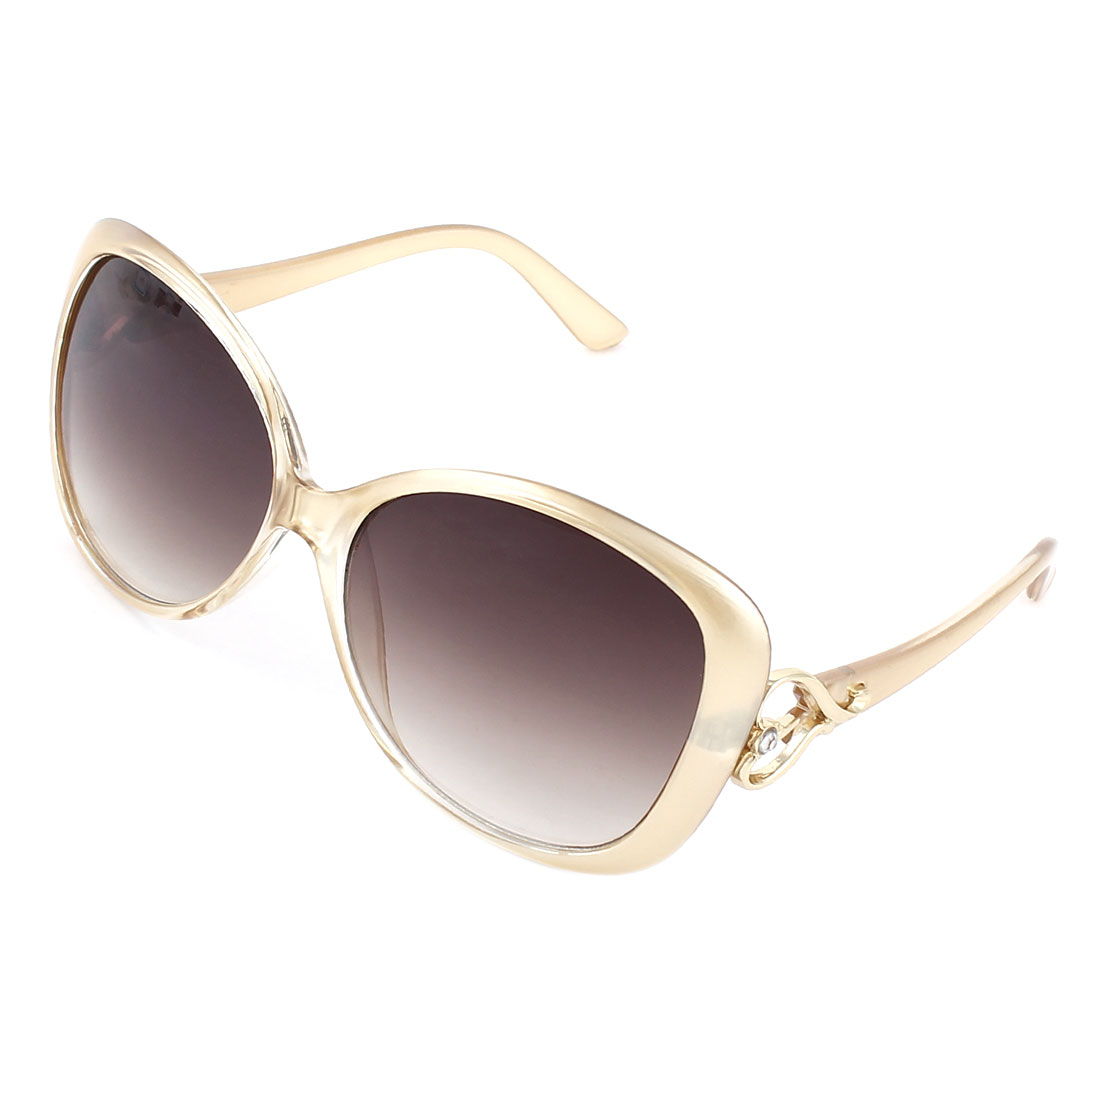 Woman Champagne Color Plastic Arms Full Frame Single Bridge Sunglasses